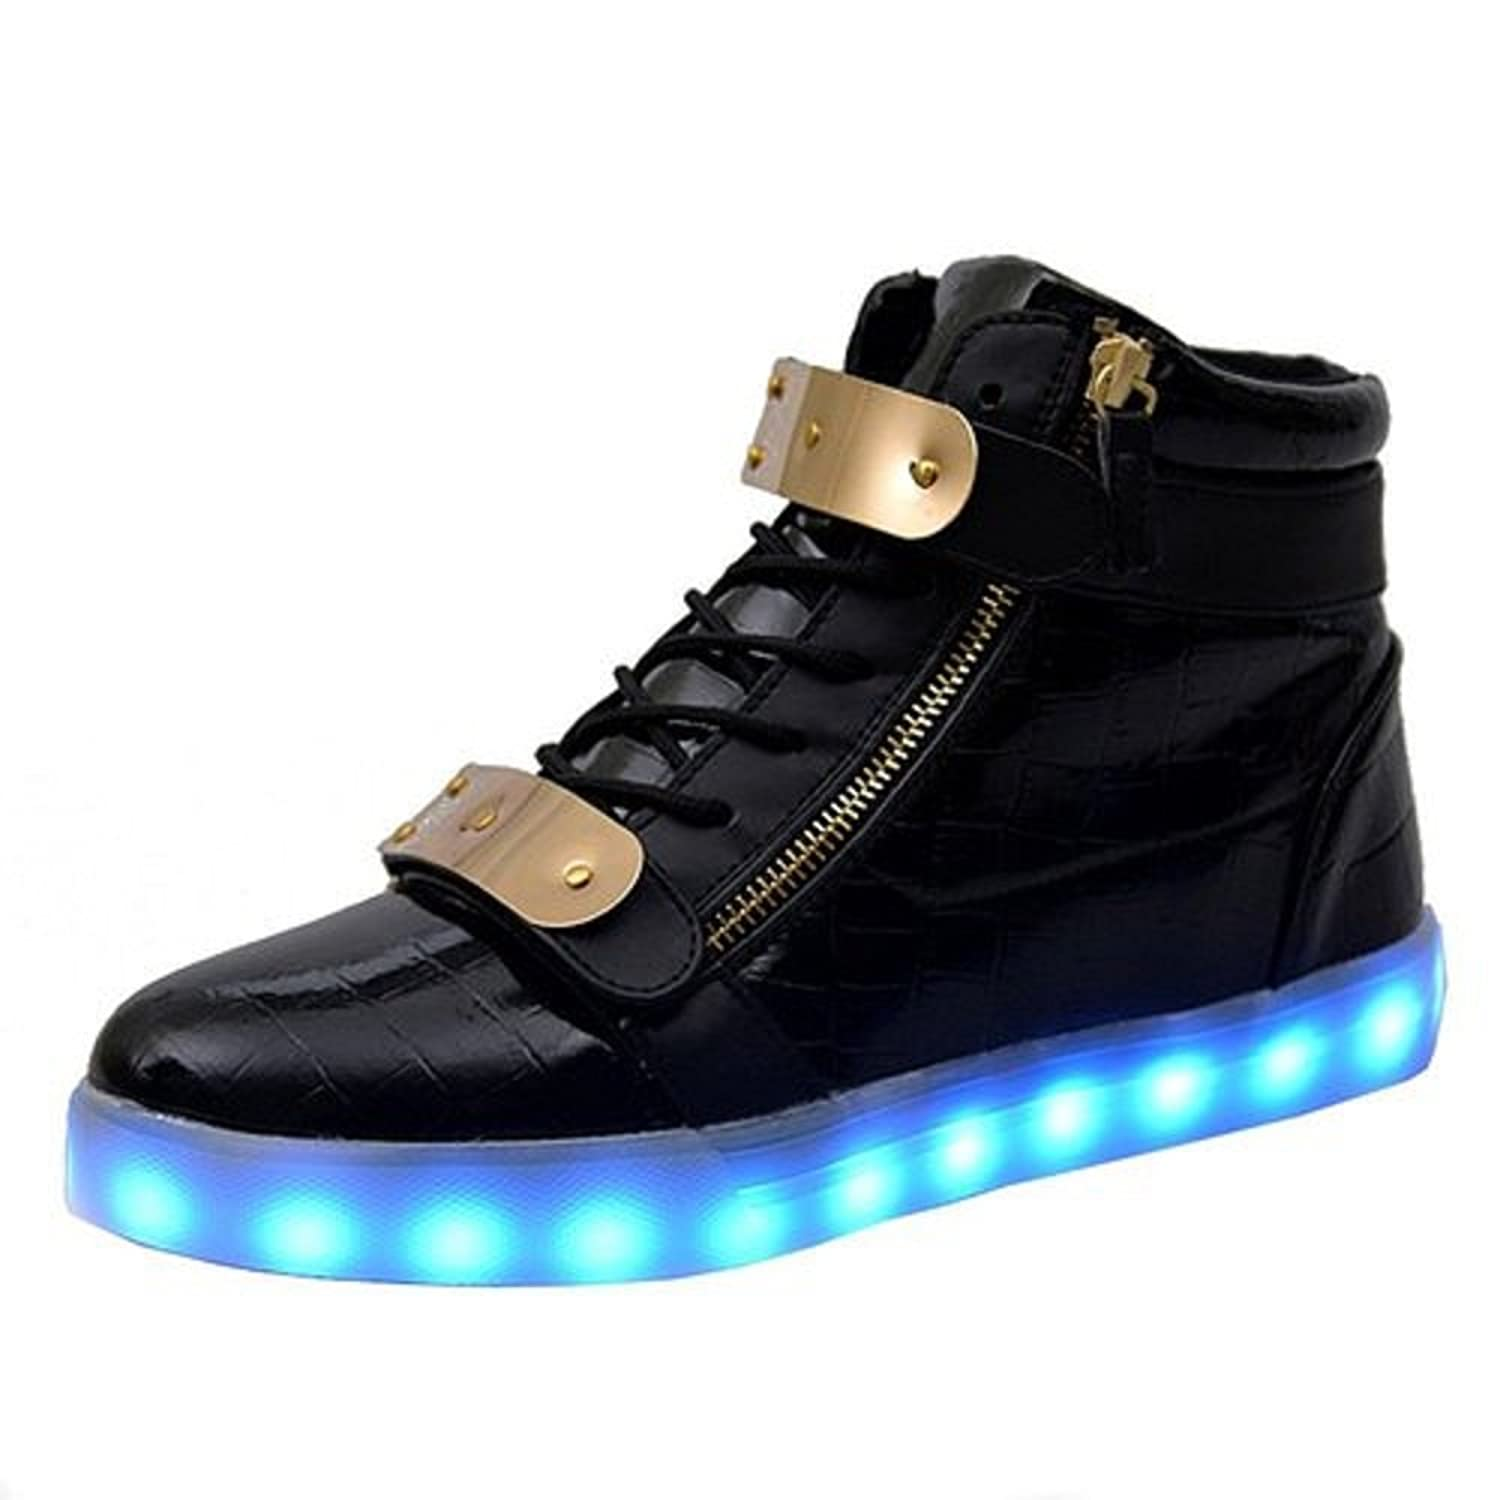 70%OFF LED Shoes ON SALES: Double Metal Velcro High Top